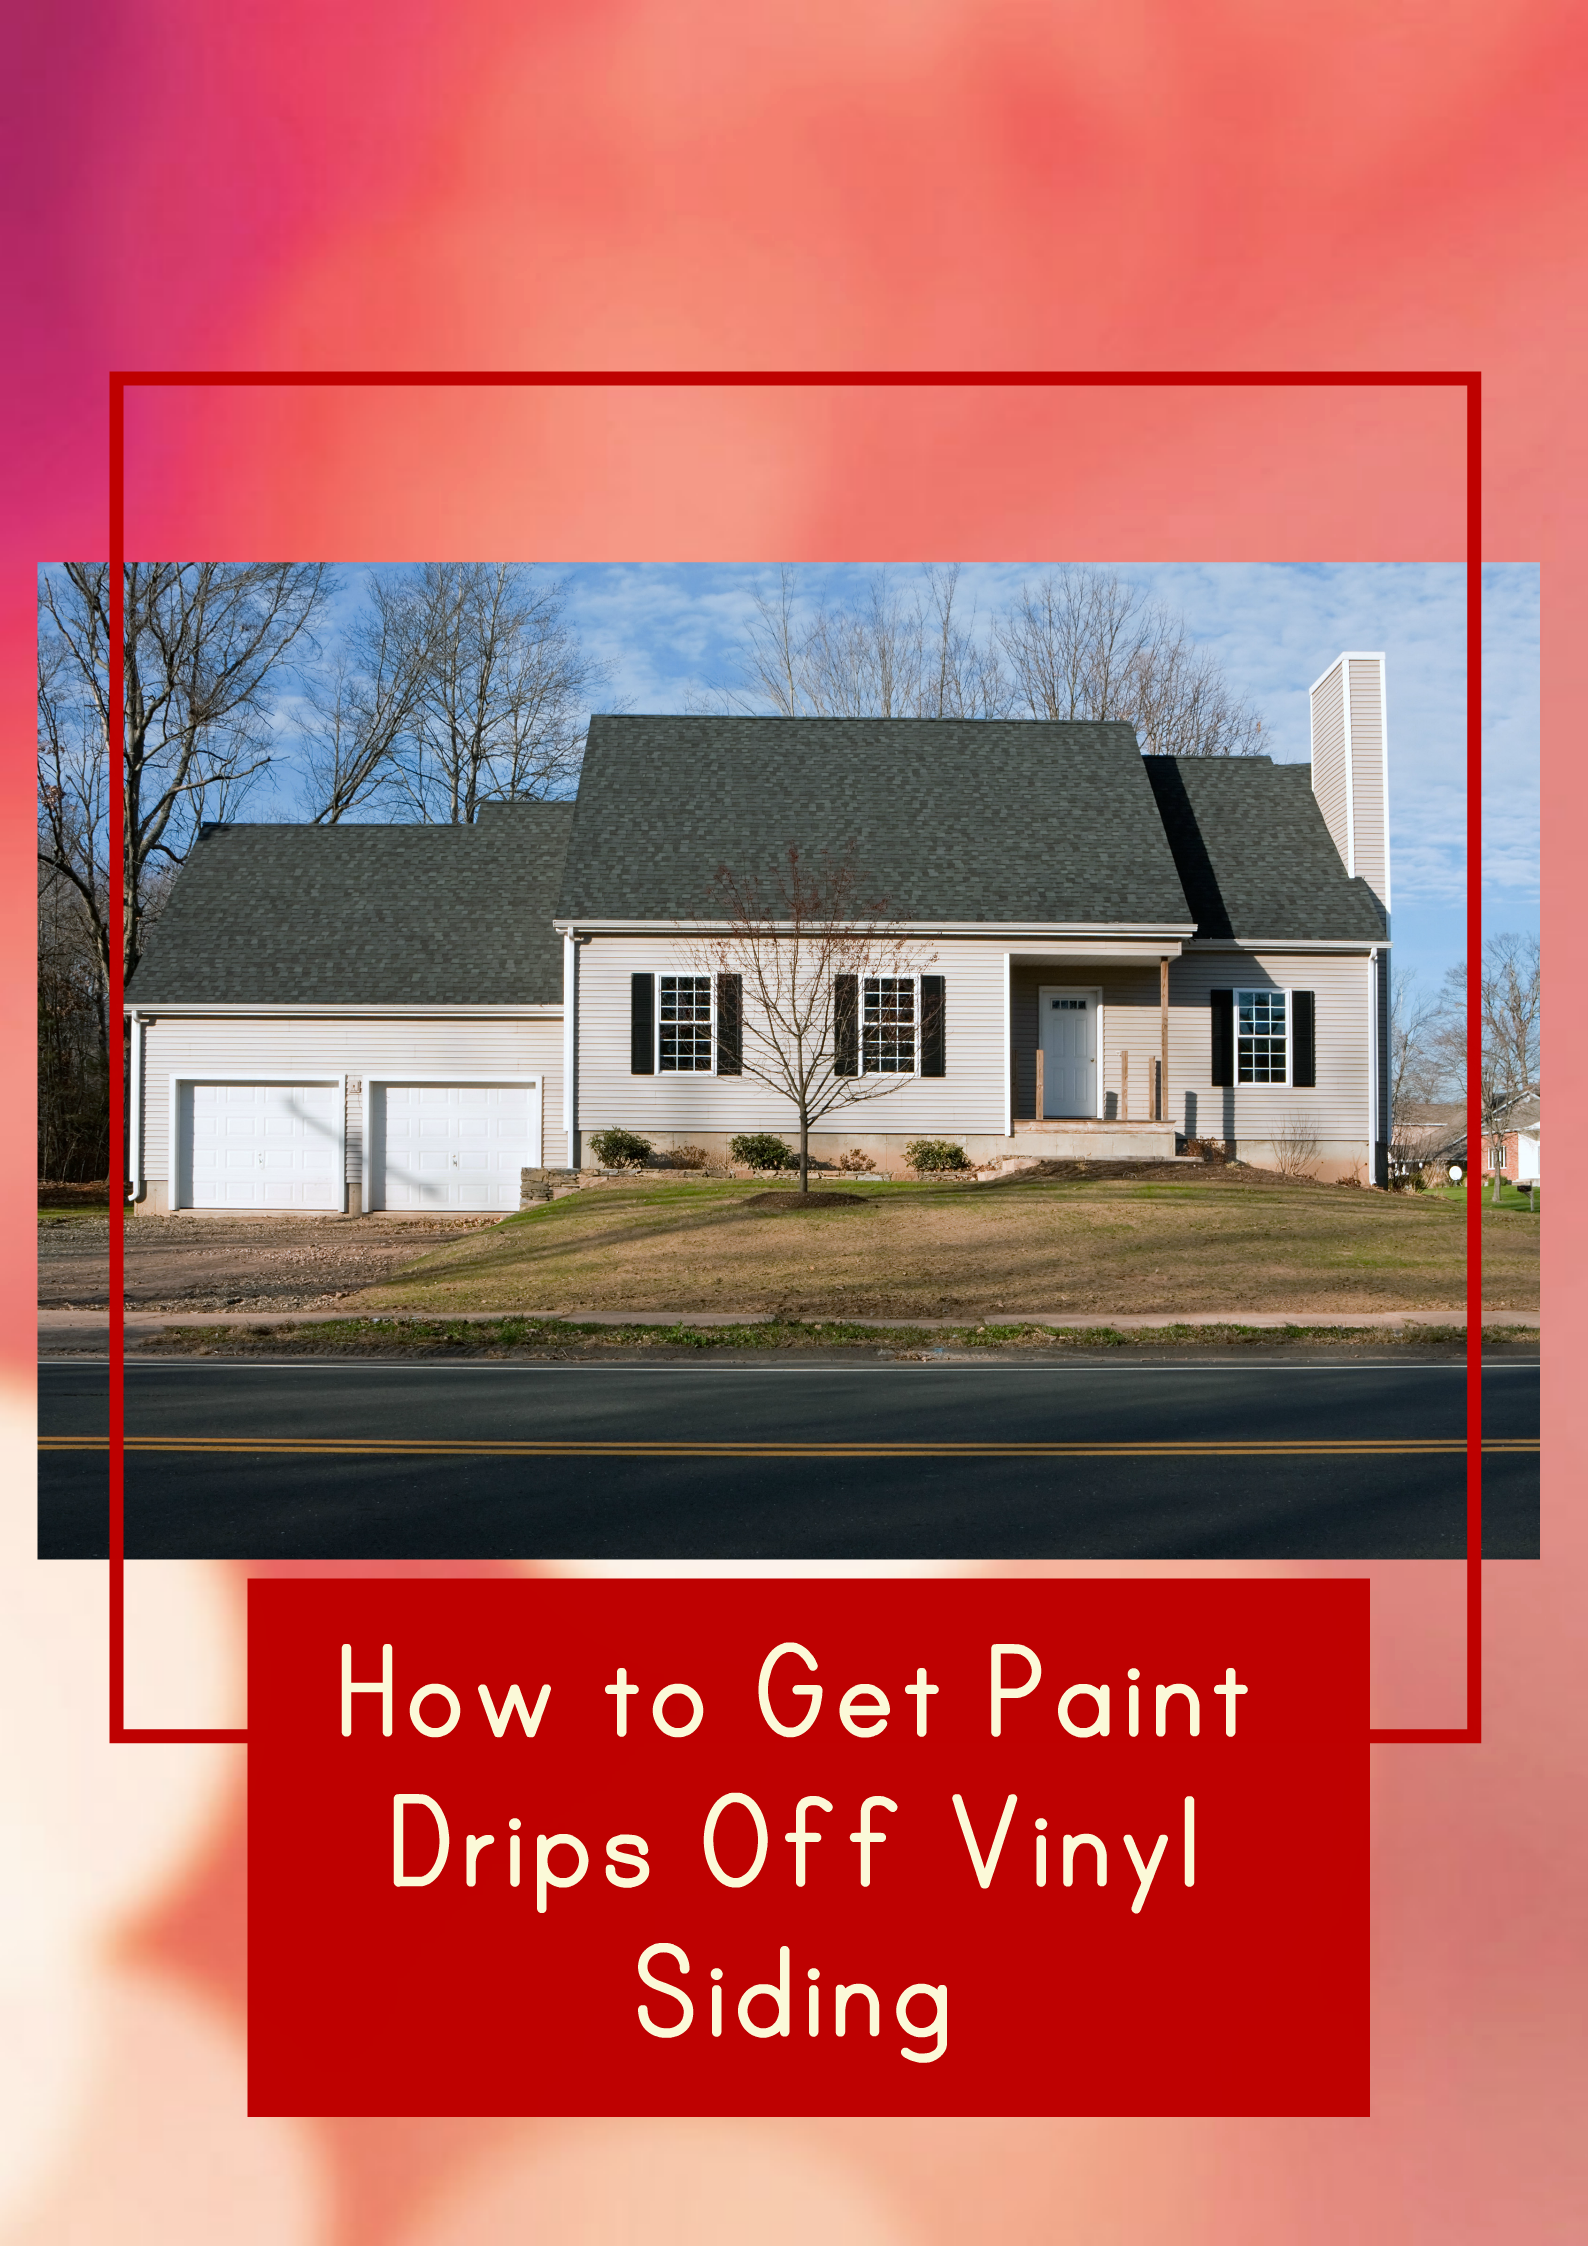 Diy Project Best Way To Get Paint Drips Off Vinyl Siding Vinyl Siding Drip Painting Painting